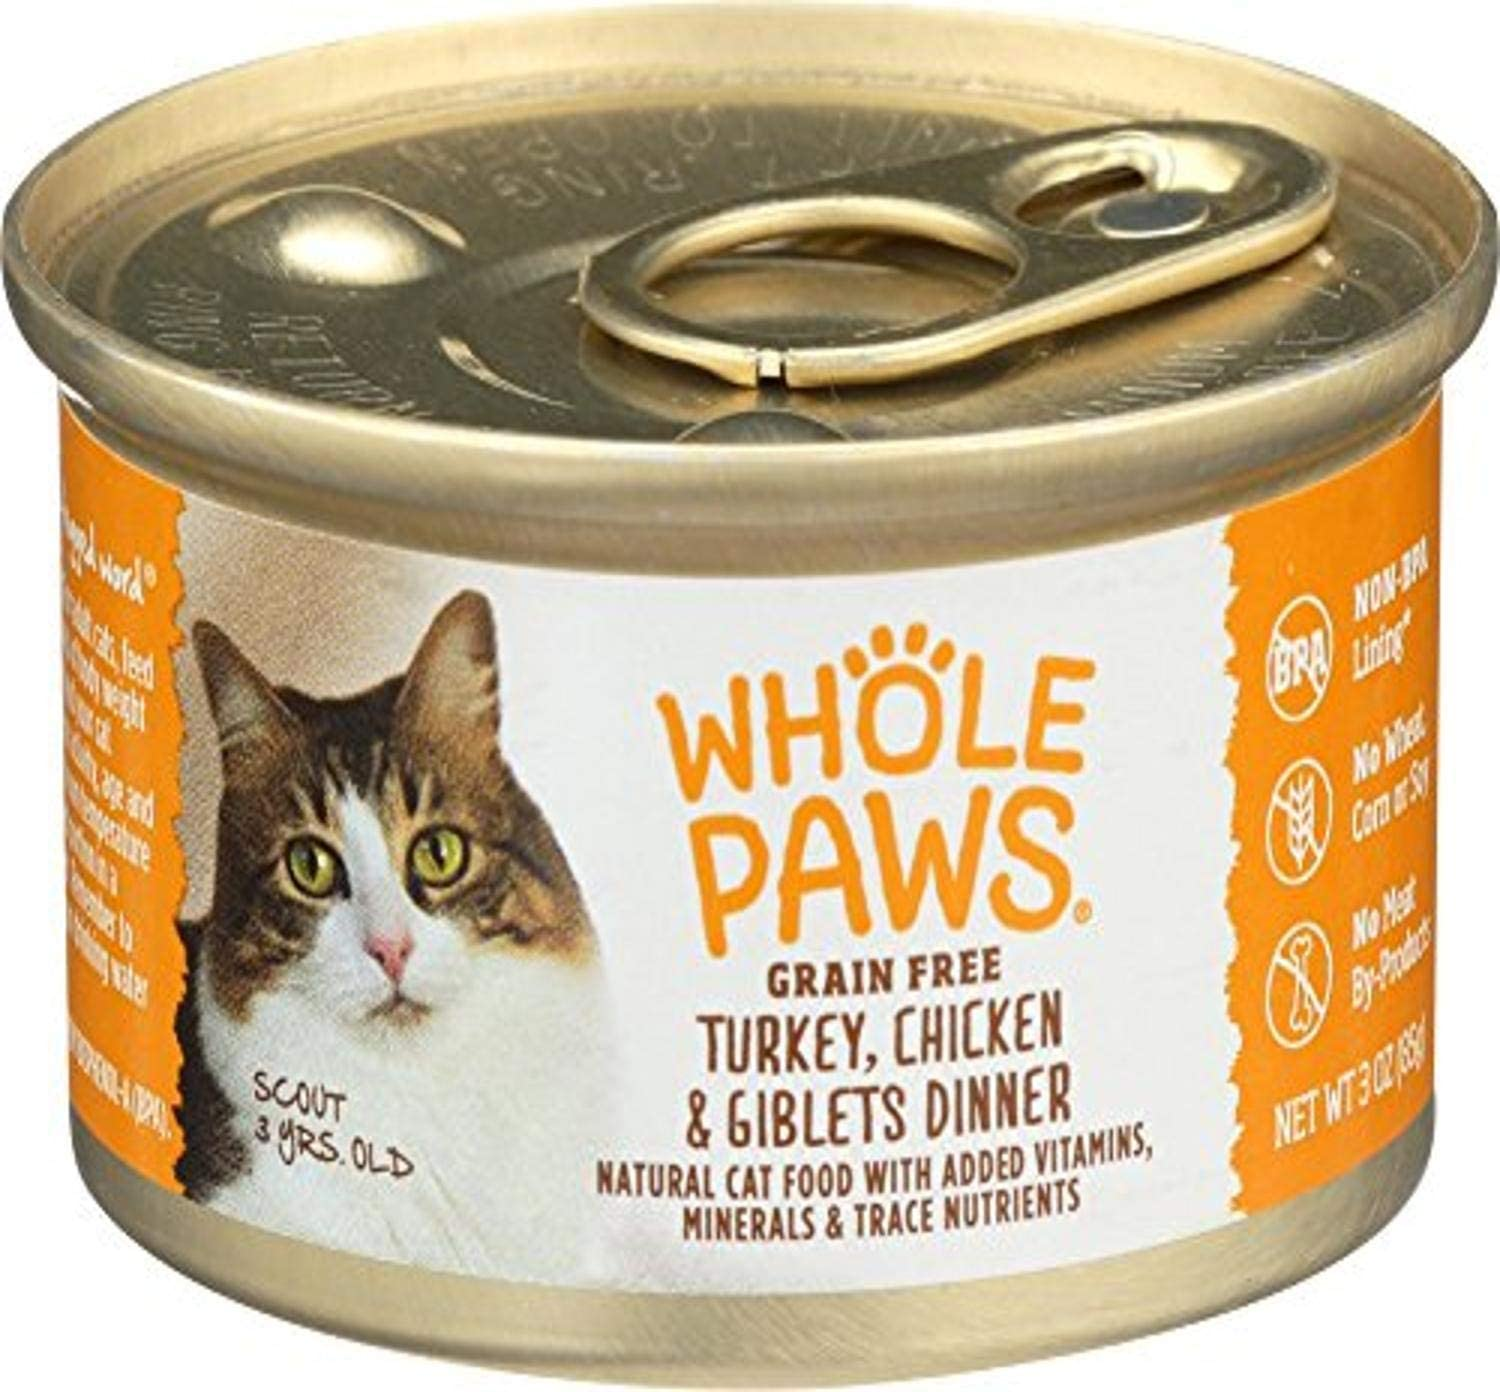 Whole Paws, Grain Free Cat Food, Turkey, Chicken & Giblets Dinner, 3 oz